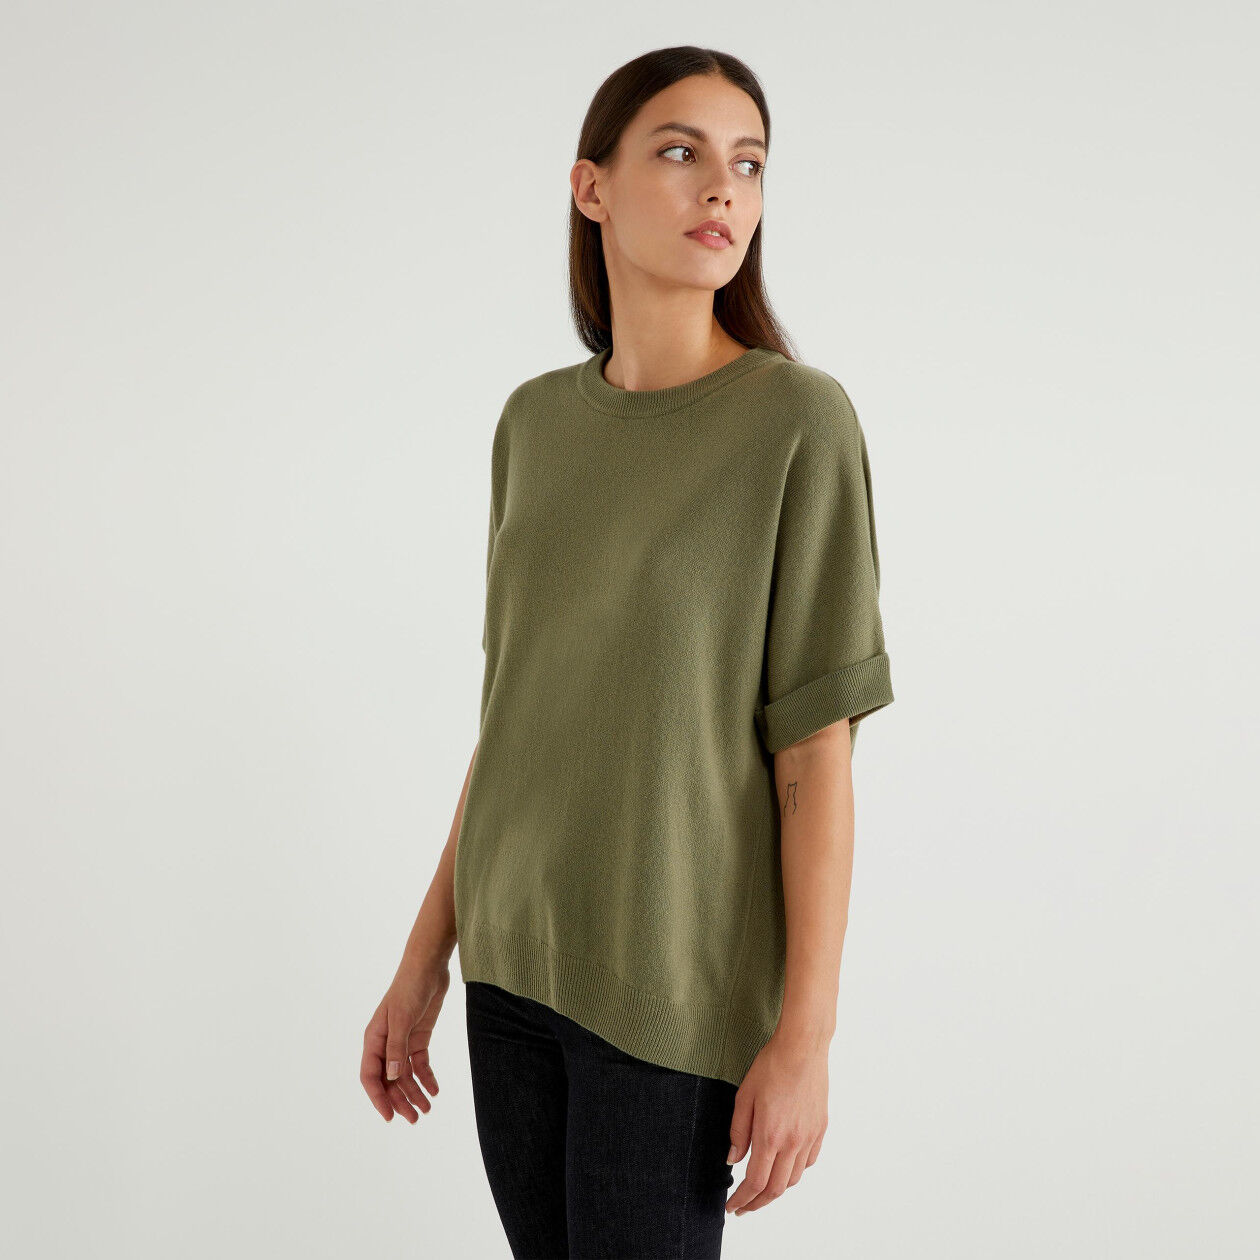 Short sleeve sweater in wool blend